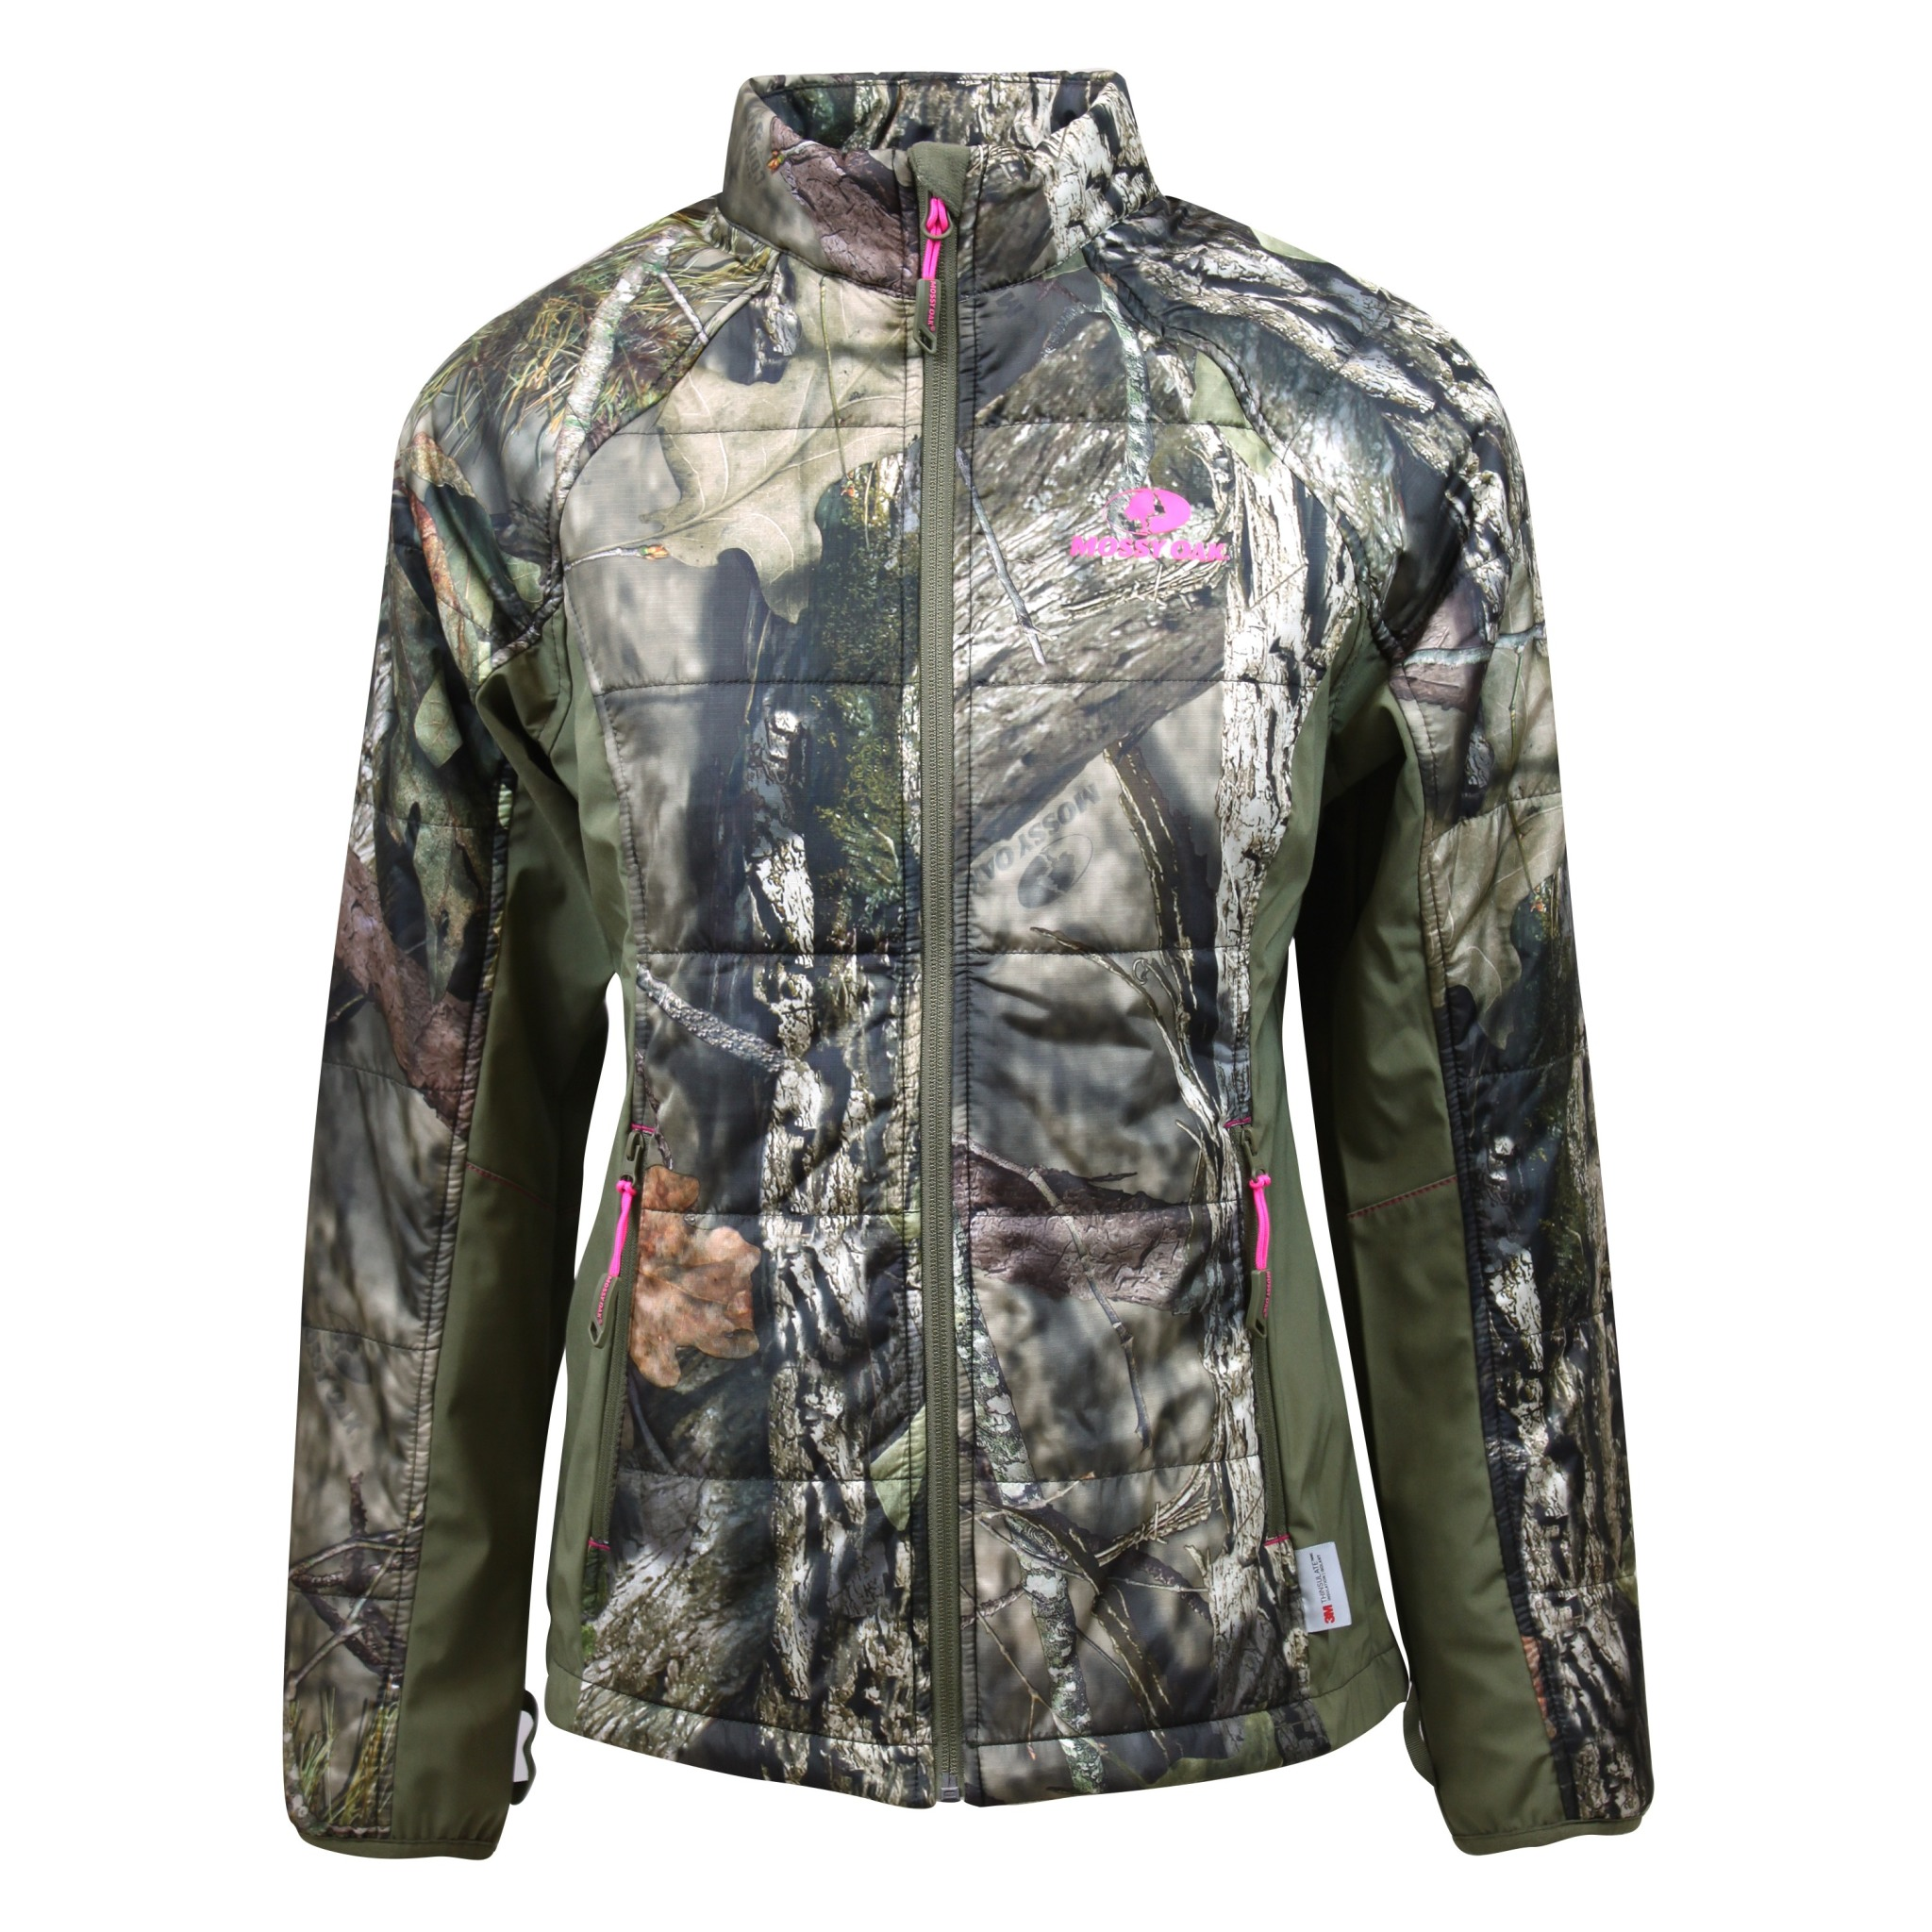 Mossy Oak Women's Insulated Jacket